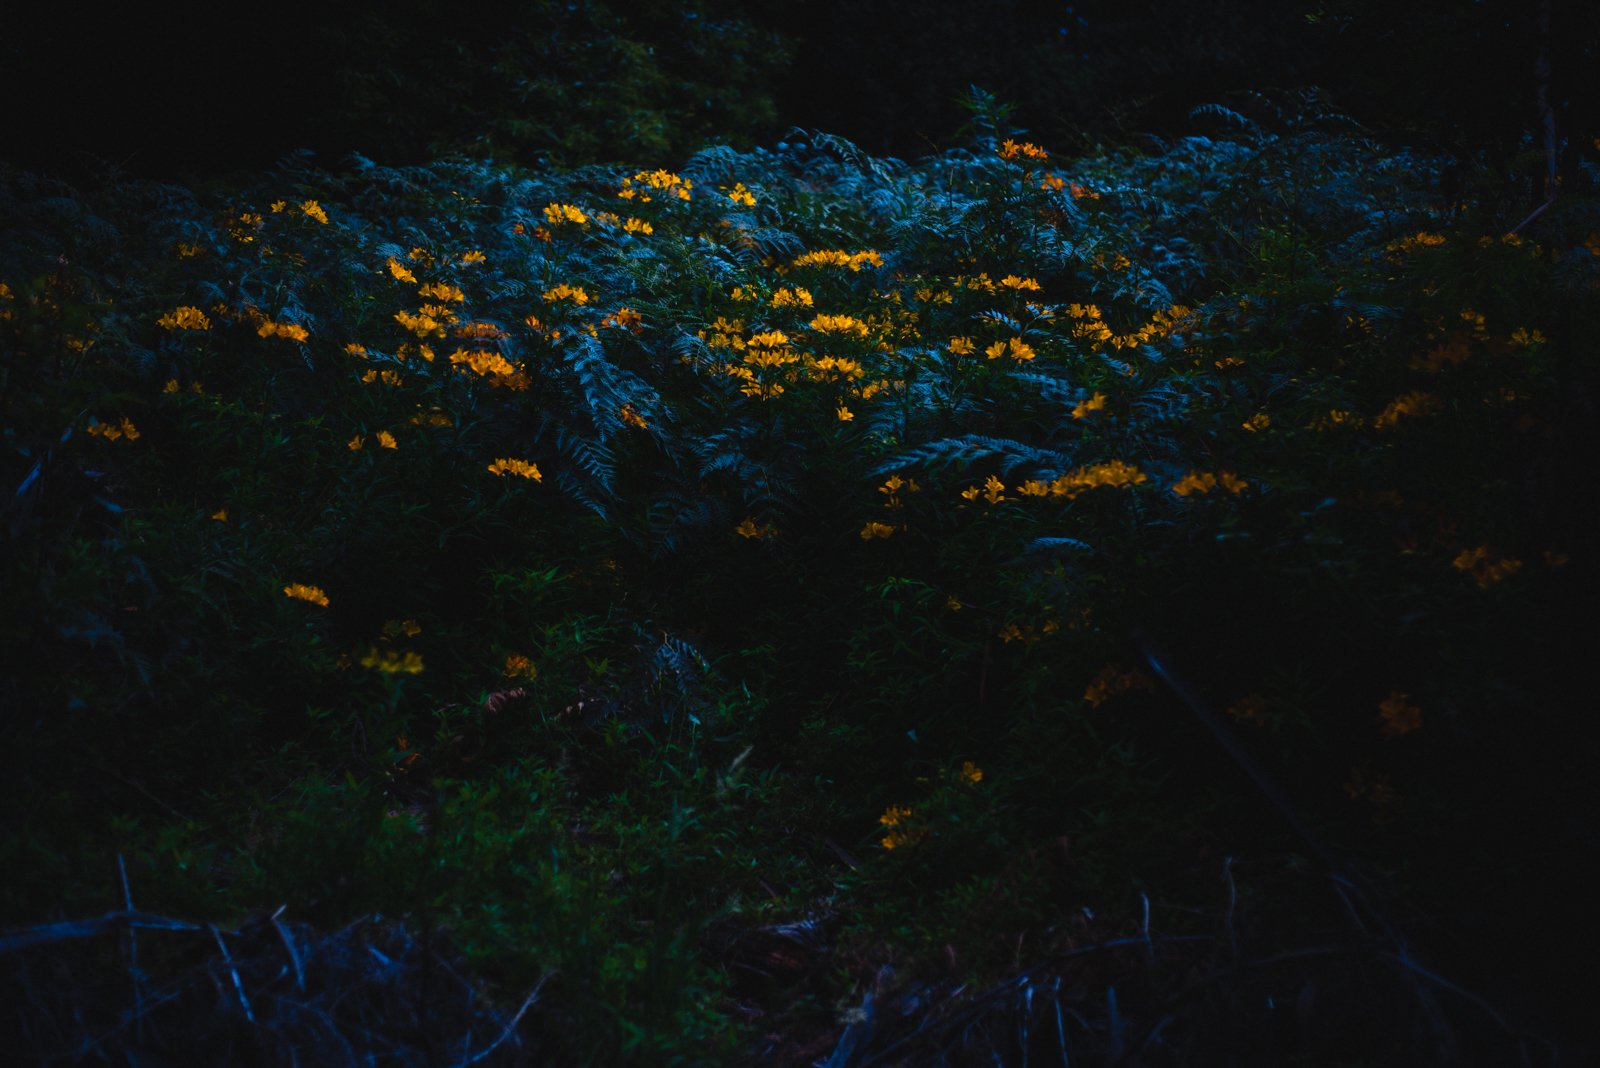 Bush with flowers at dusk